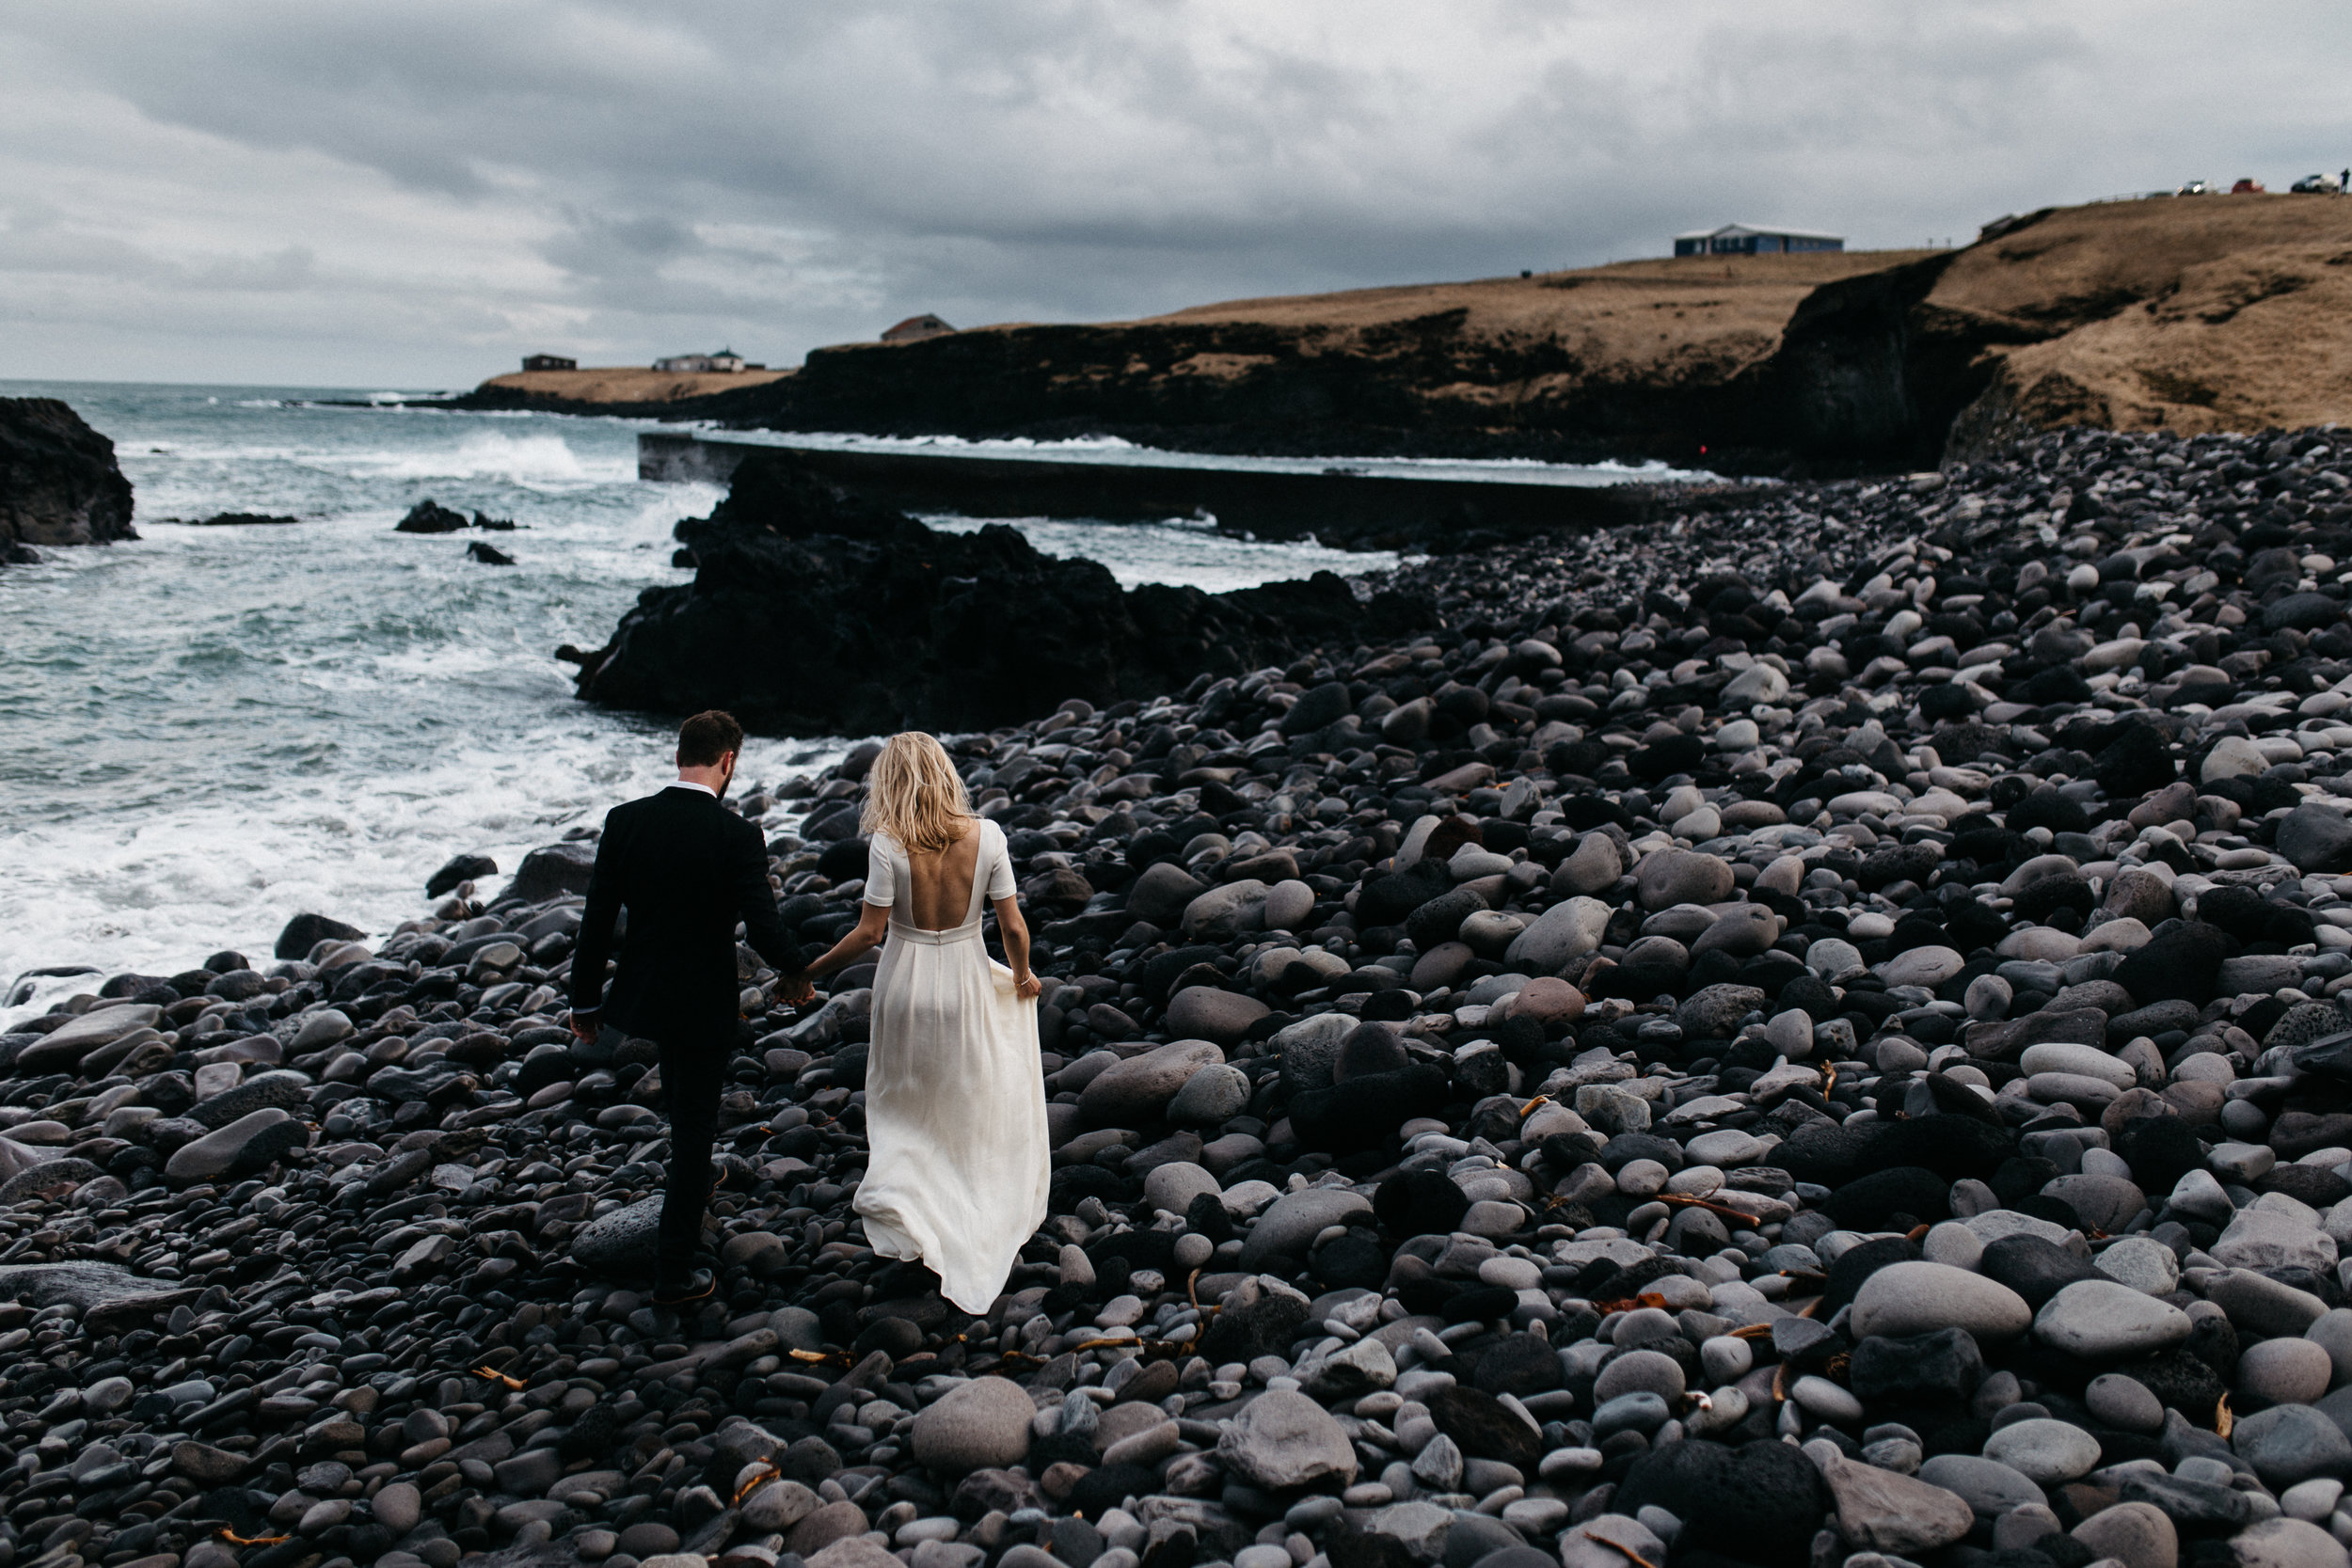 Hannah & Jeff both love getting lost in breathtaking landscapes, and wanted an intimate wedding rooted in nature and adventure. Hannah had been intrigued by Iceland for years, so they decided to get married in the little black church at Hotel Budir, on Snaefellsnes Peninsula. Originally planning to elope, Hannah & Jeff ended up bringing a group of their dearest family and friends along for this magical day. As a florist, Hannah spent the morning with her business partner creating little arrangements in a sunroom overlooking the bay and lava fields.It was just the right size for these personal touches to be manageable, which was so important to her.